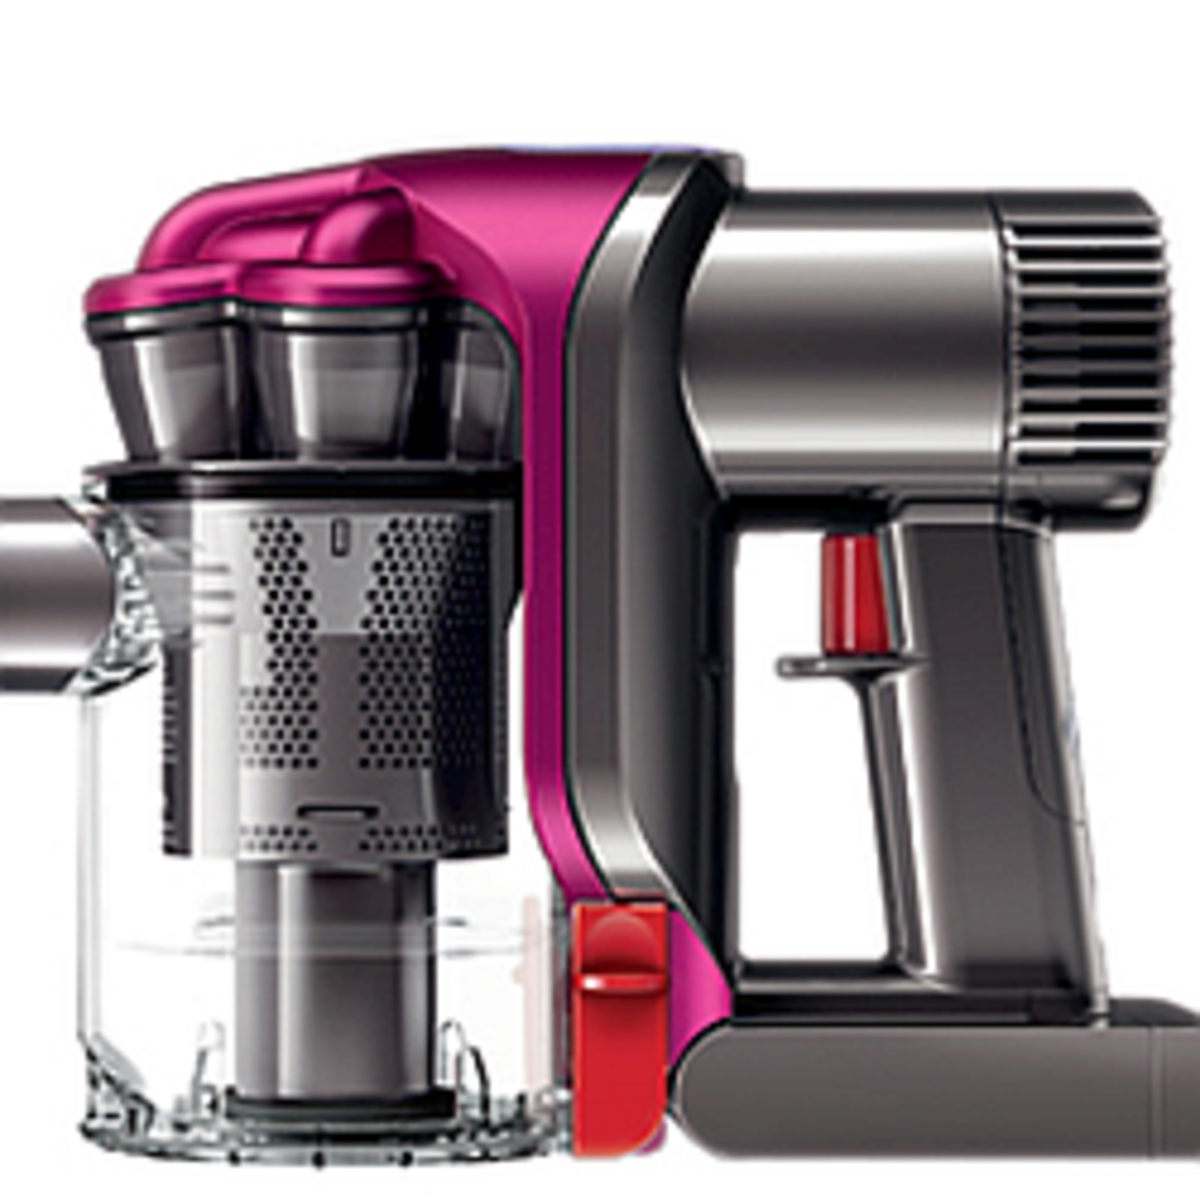 Dyson DC58 vs DC59 - Comparison and Review